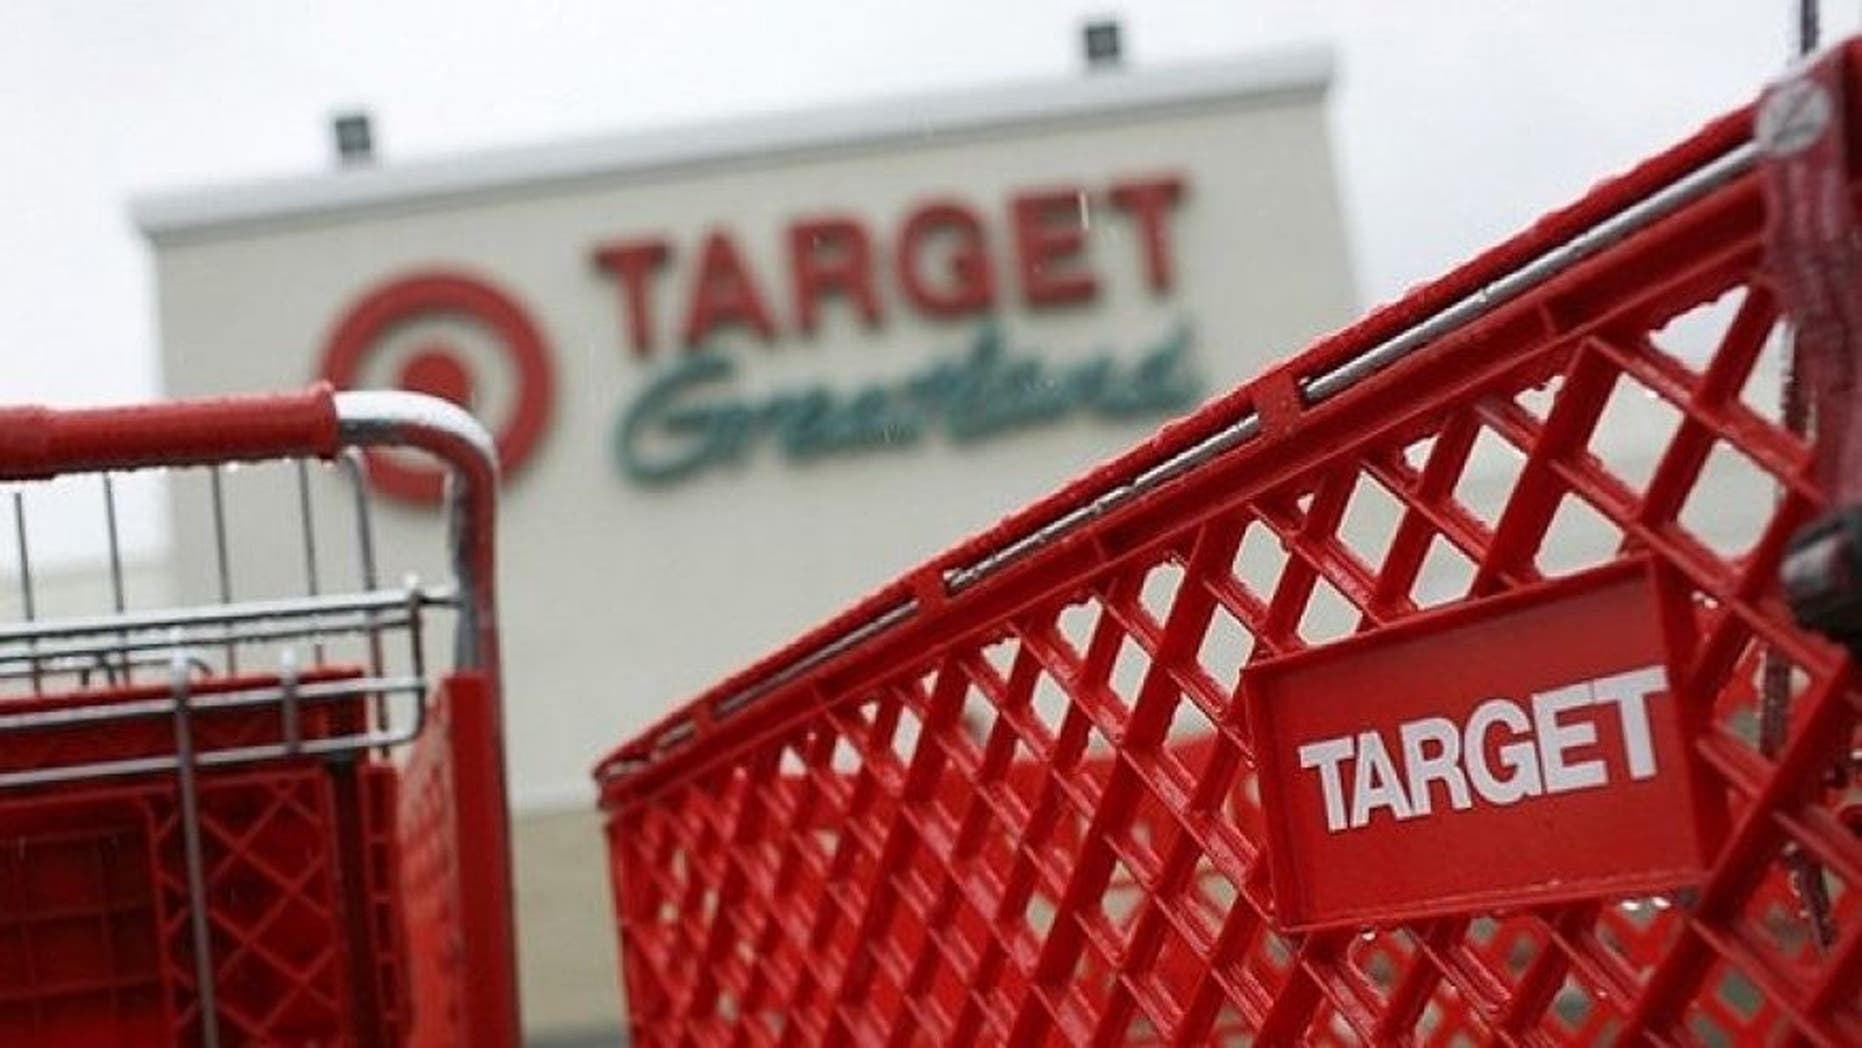 File photo - A Target retail store is shown in Daly City, California February 23, 2010. (REUTERS/Robert Galbraith)